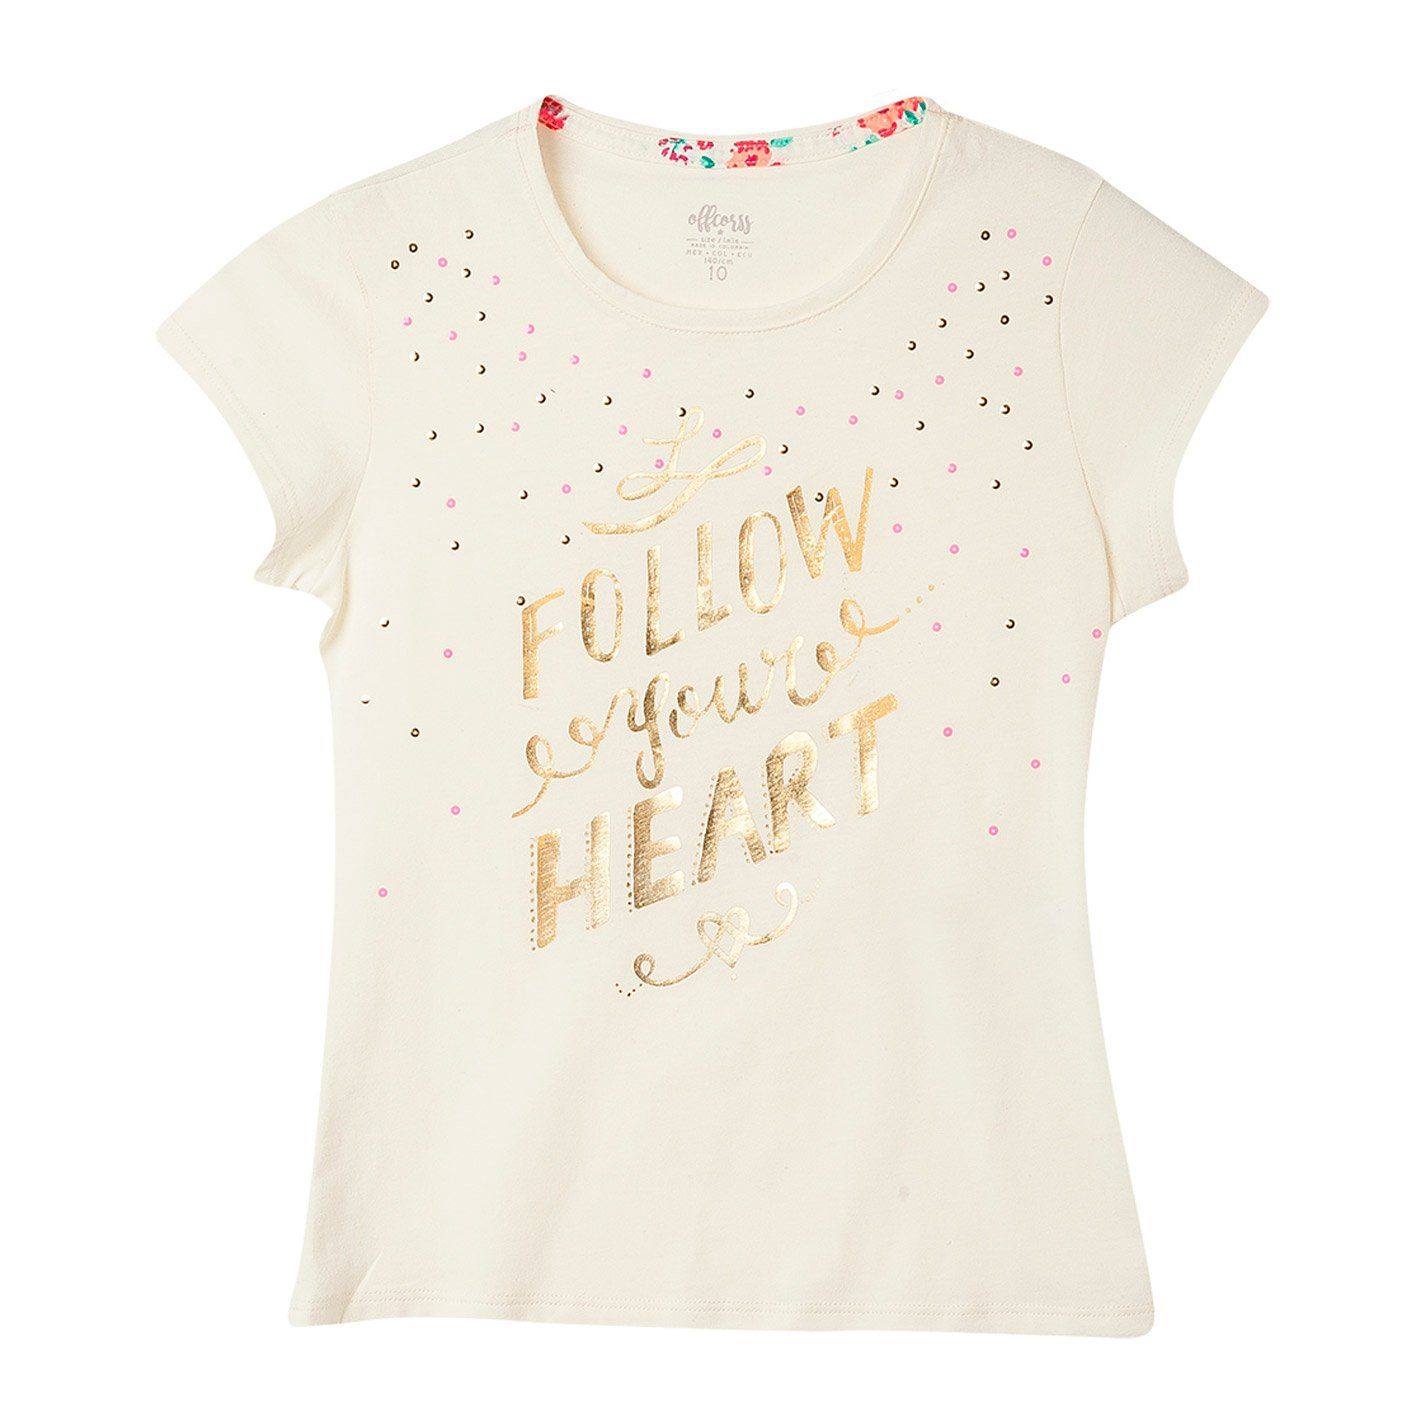 Tee Shirt Blouse Top Trendy